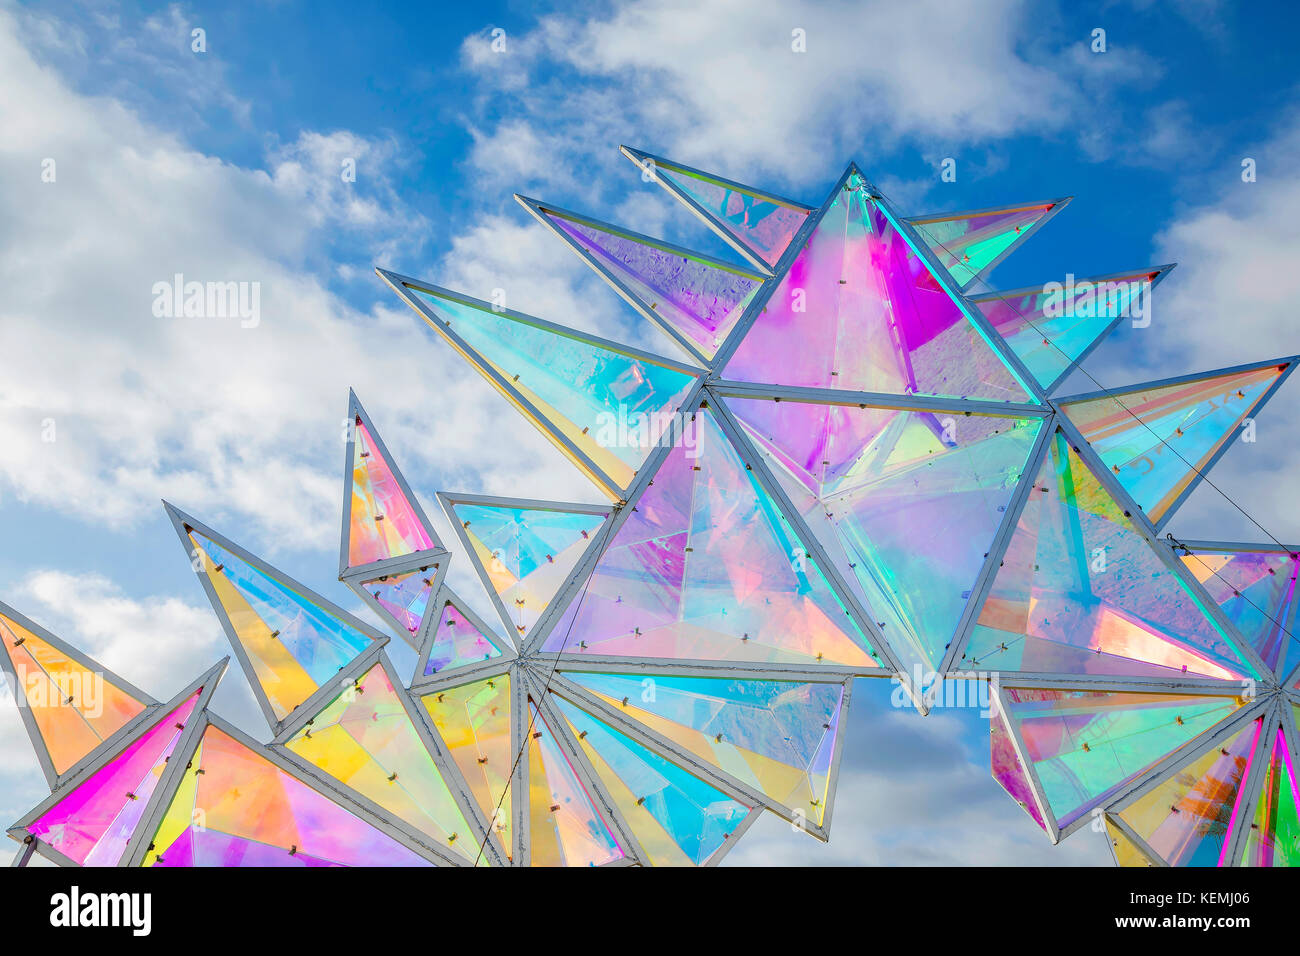 Pulse Portal sculpture in San Diego, California - Stock Image